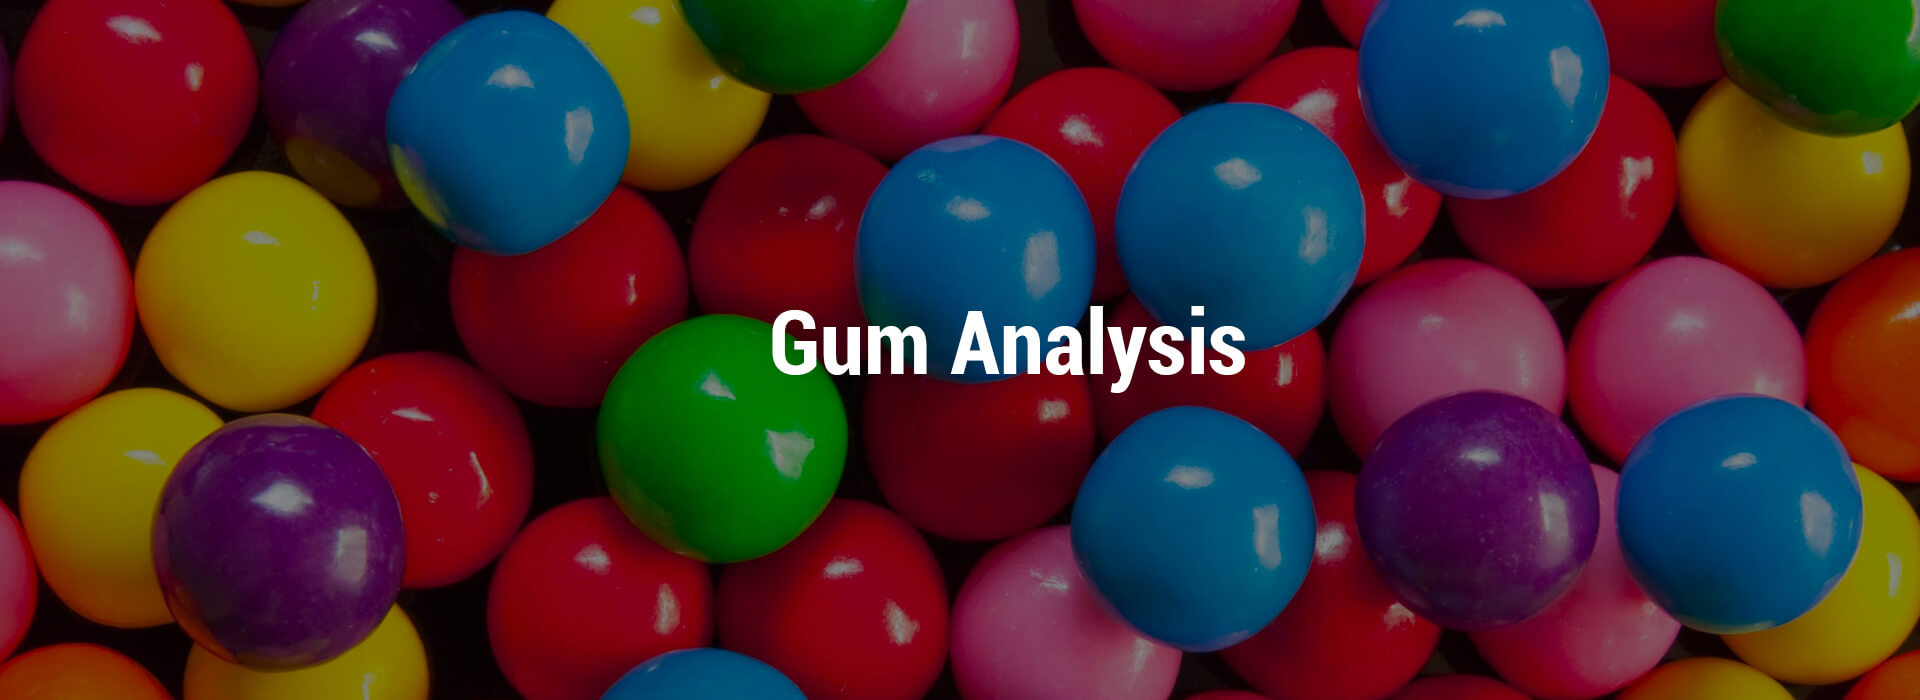 SP-Gum-header-1